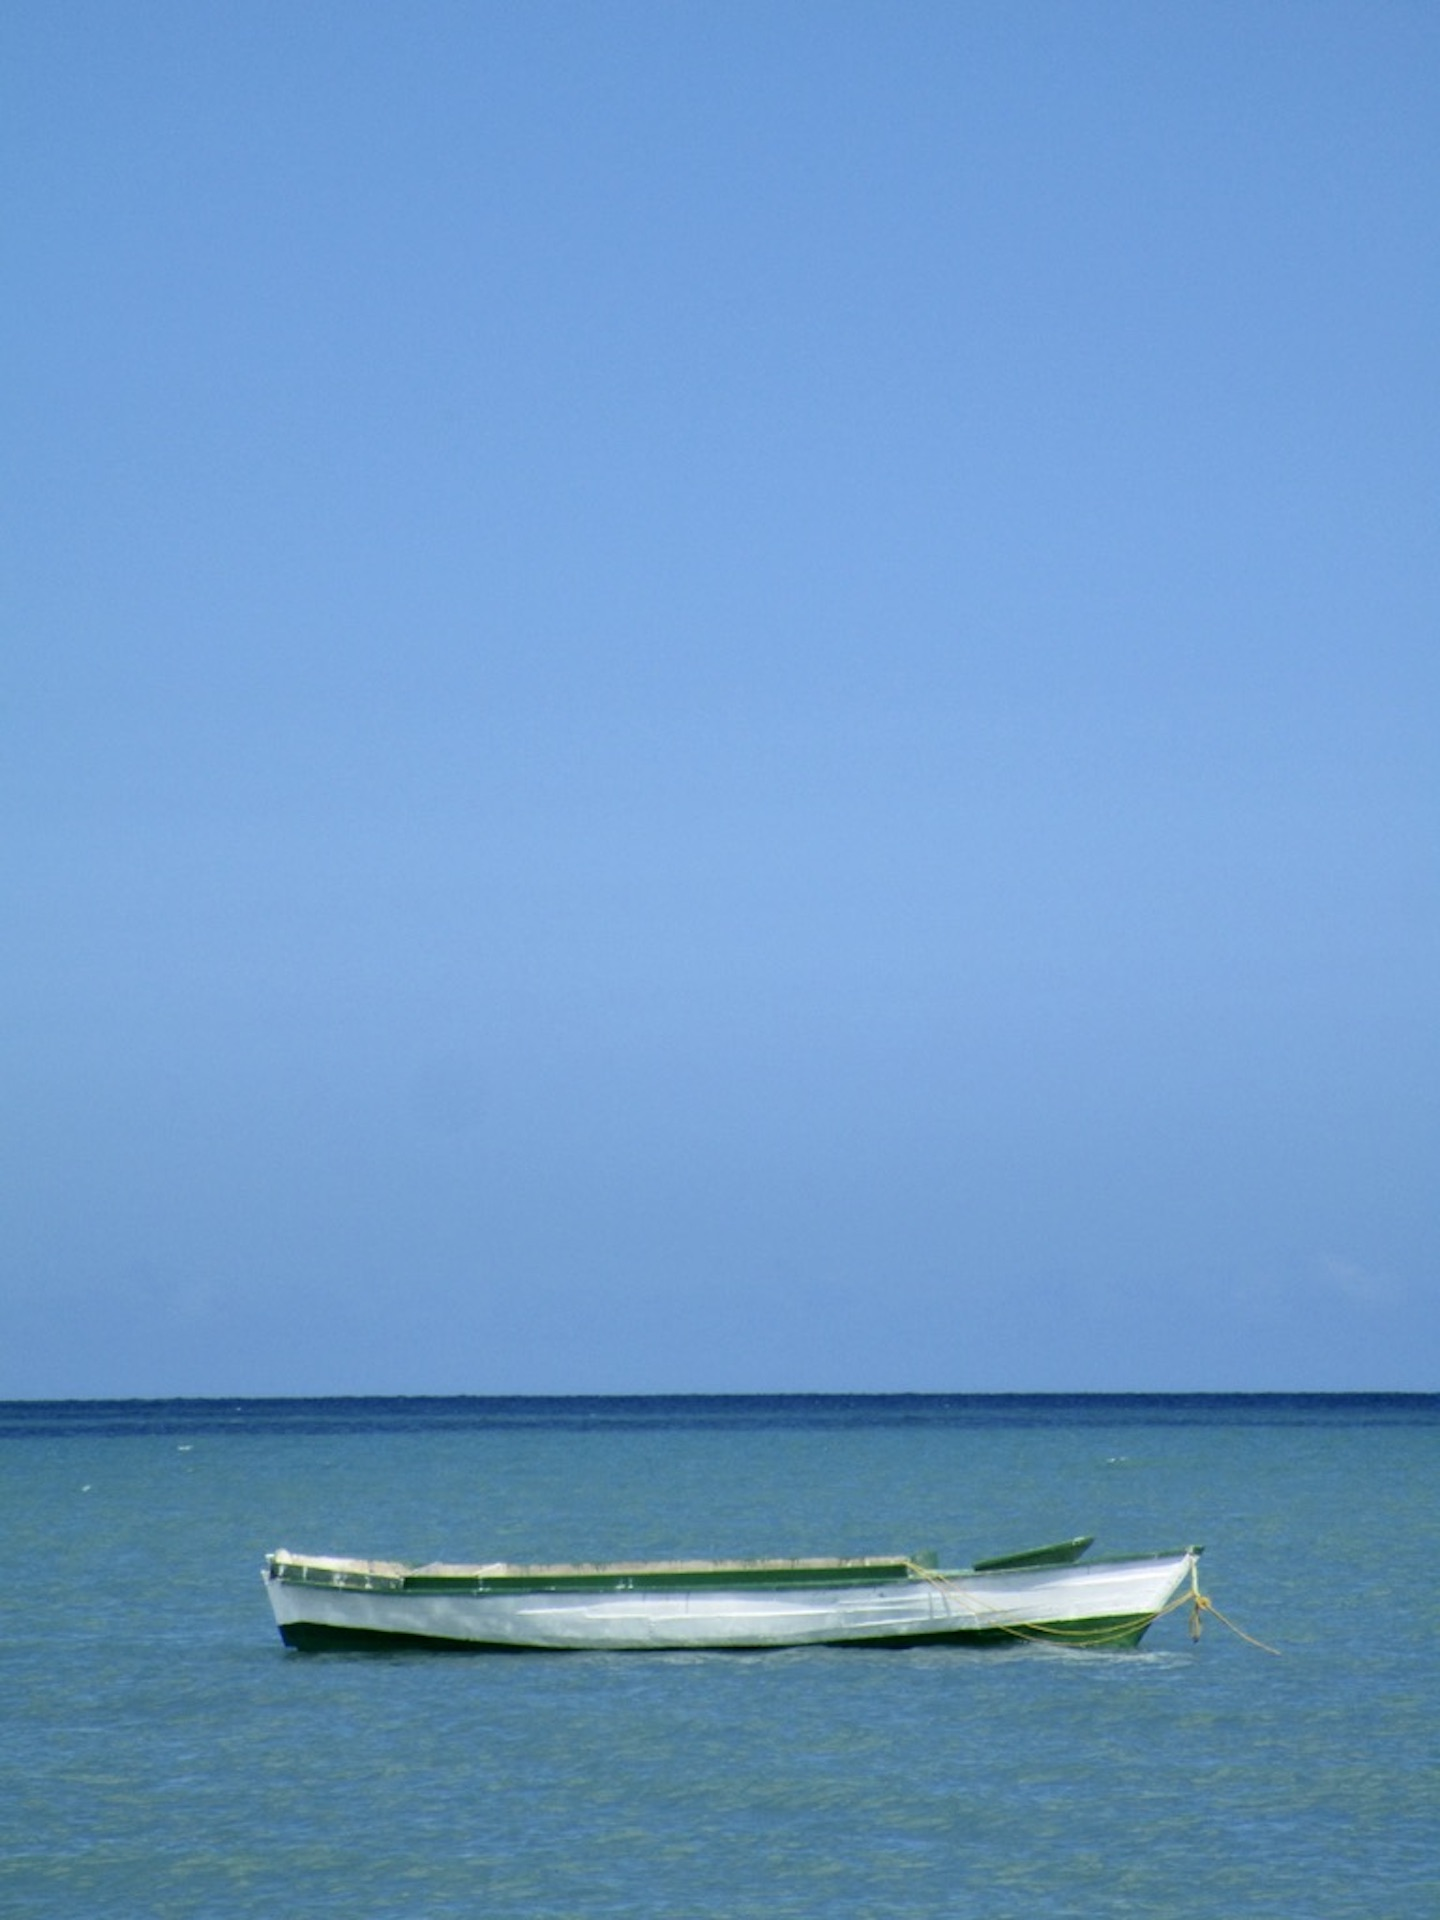 <center>CARIBBEAN FISHING BOAT; MANAURE, COLOMBIA</center>